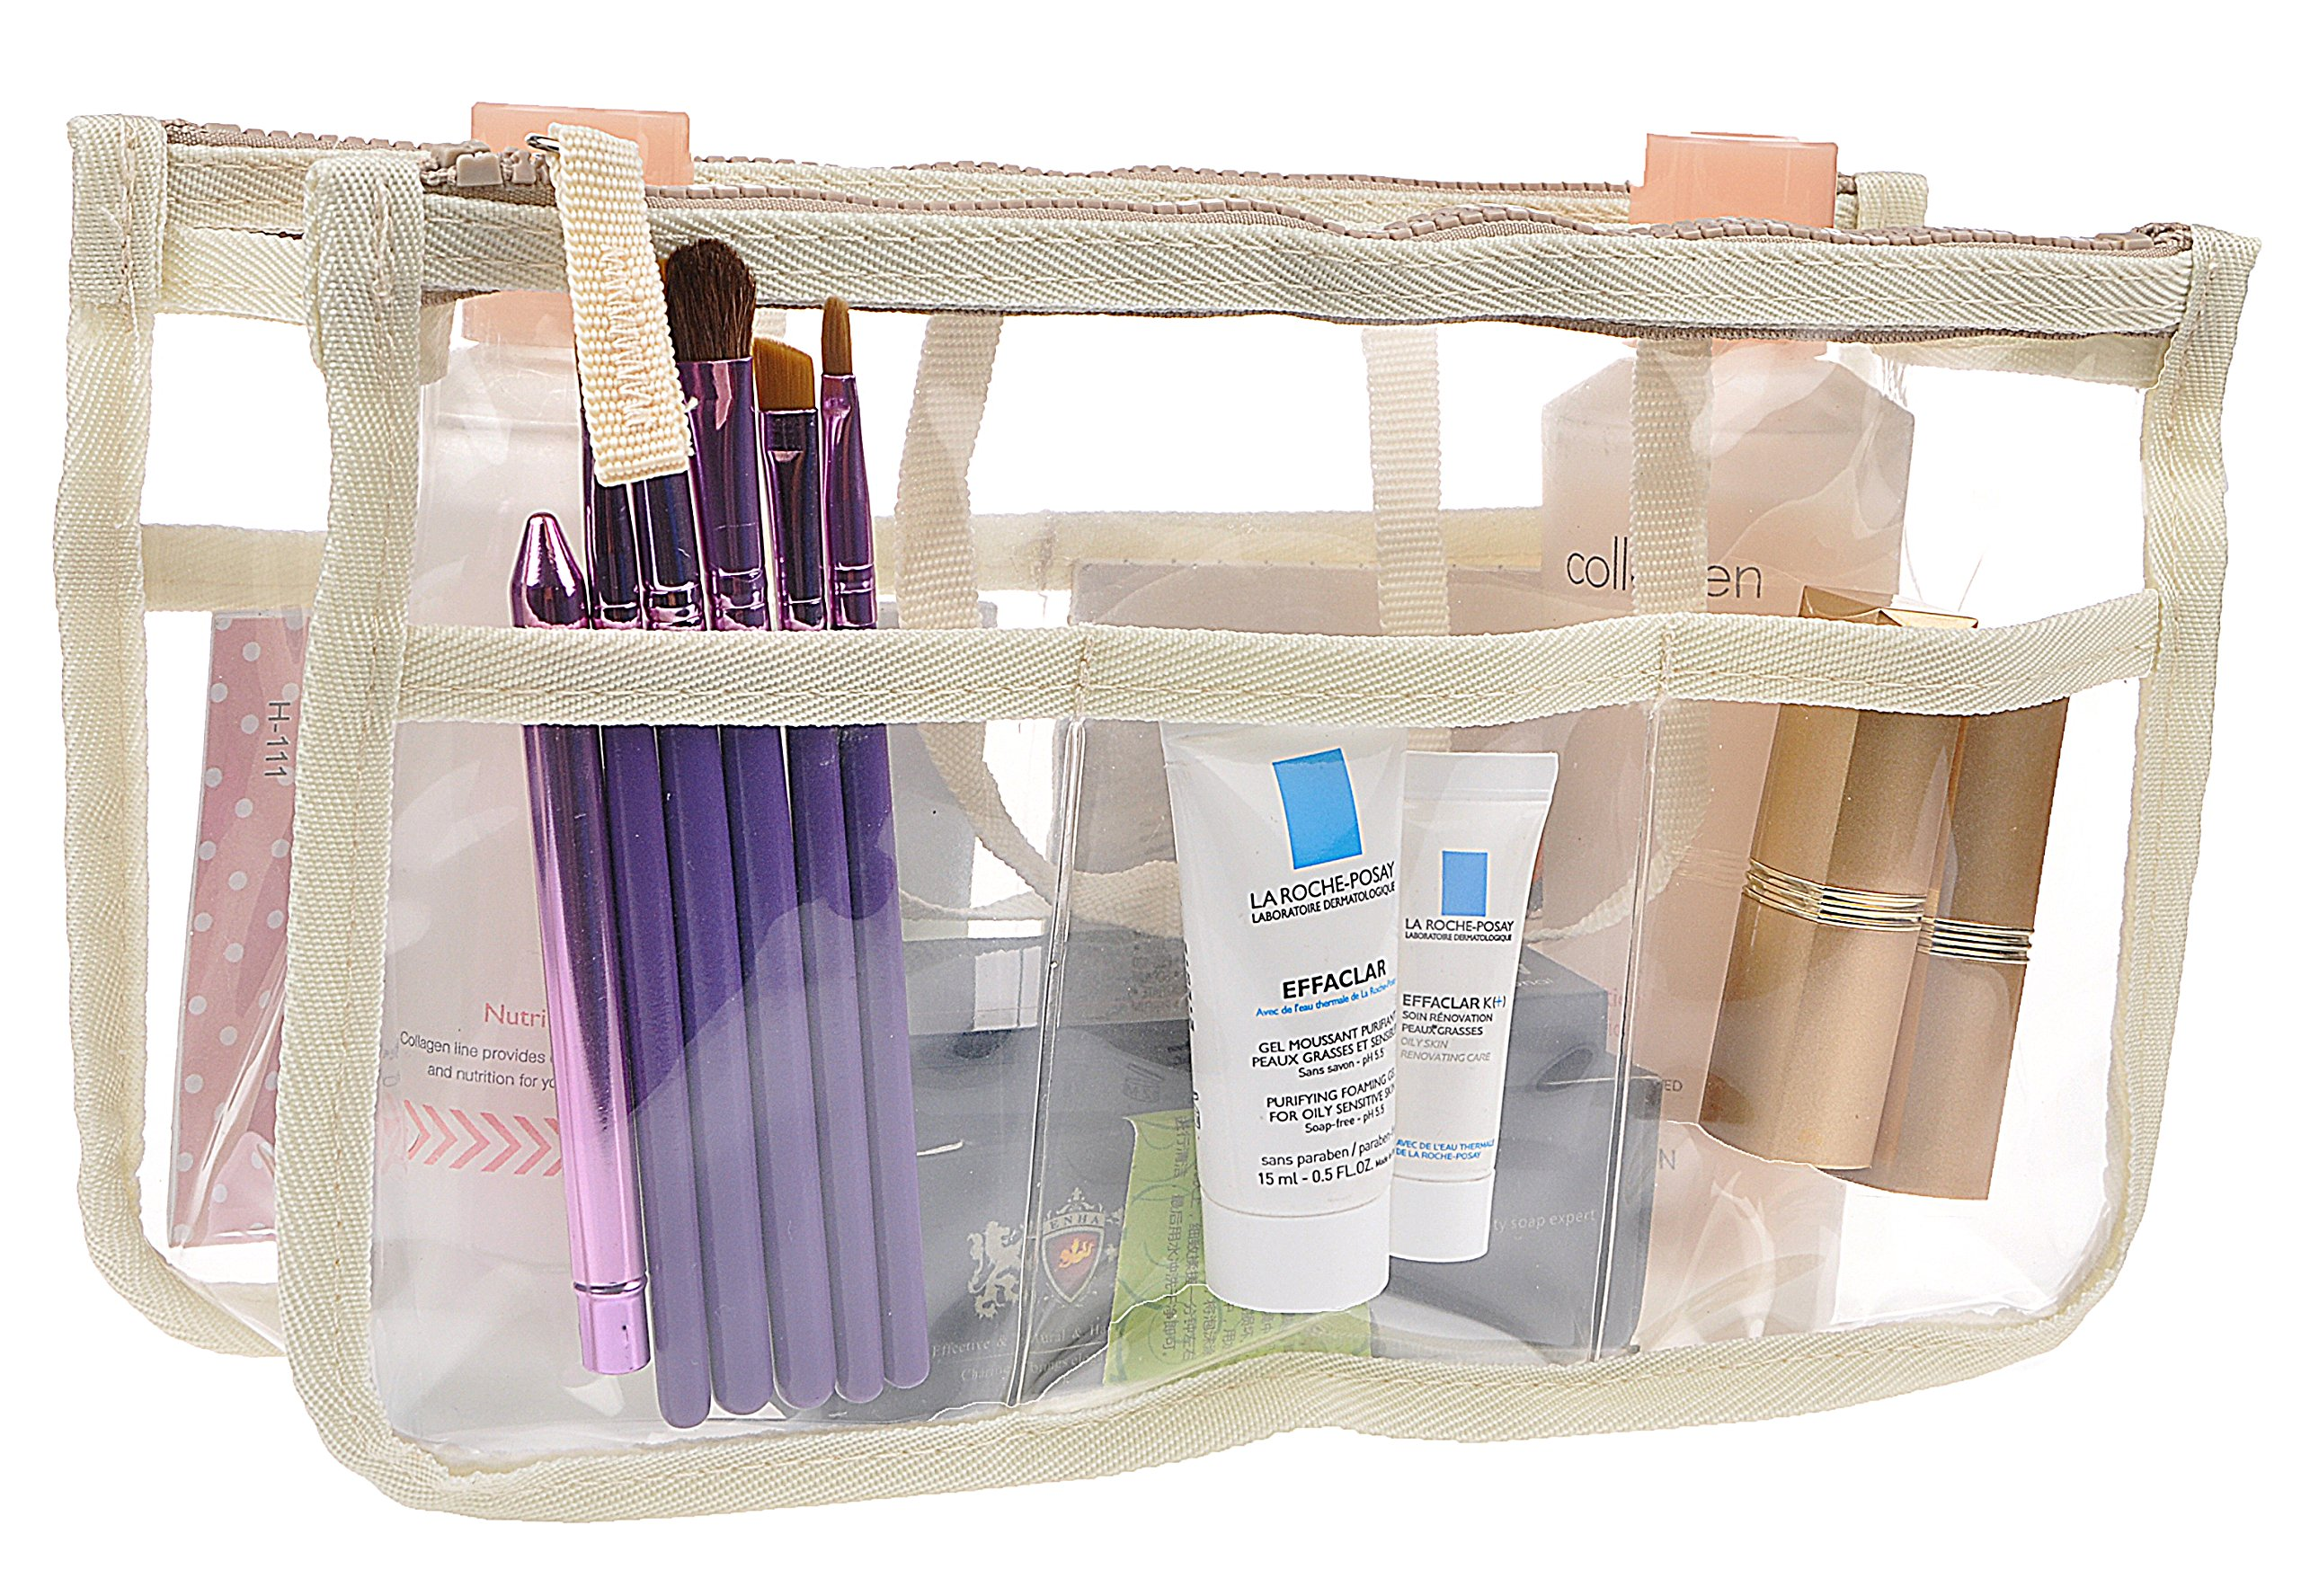 Vercord Clear Handbag Purse Tote Insert Organizer Liner Bag In Bag with Handle, Beige M